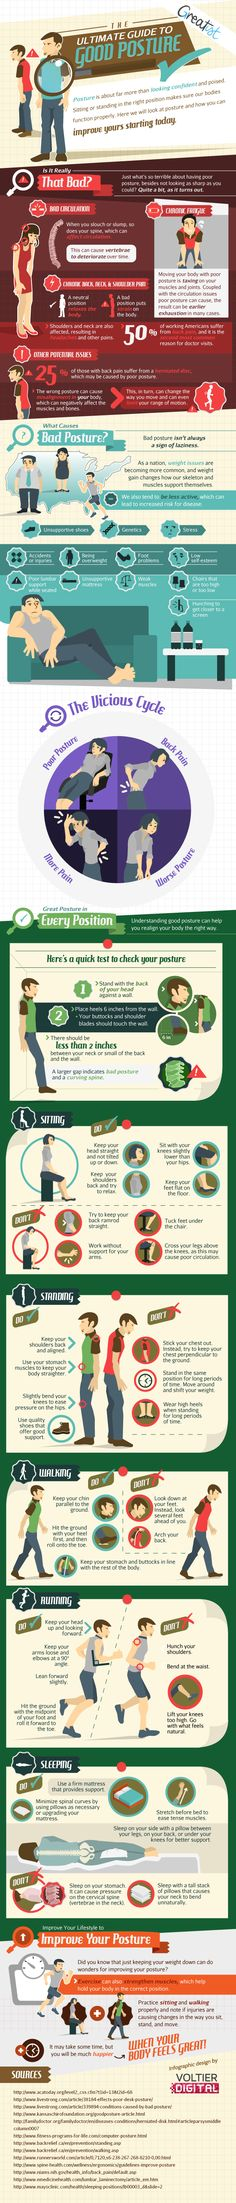 <p>Posture is about more than looking confident. Sitting or standing correctly ensures our bodies function properly. Use this infographic to start improving your posture today!</p> https://greatist.com/health/ultimate-guide-good-posture